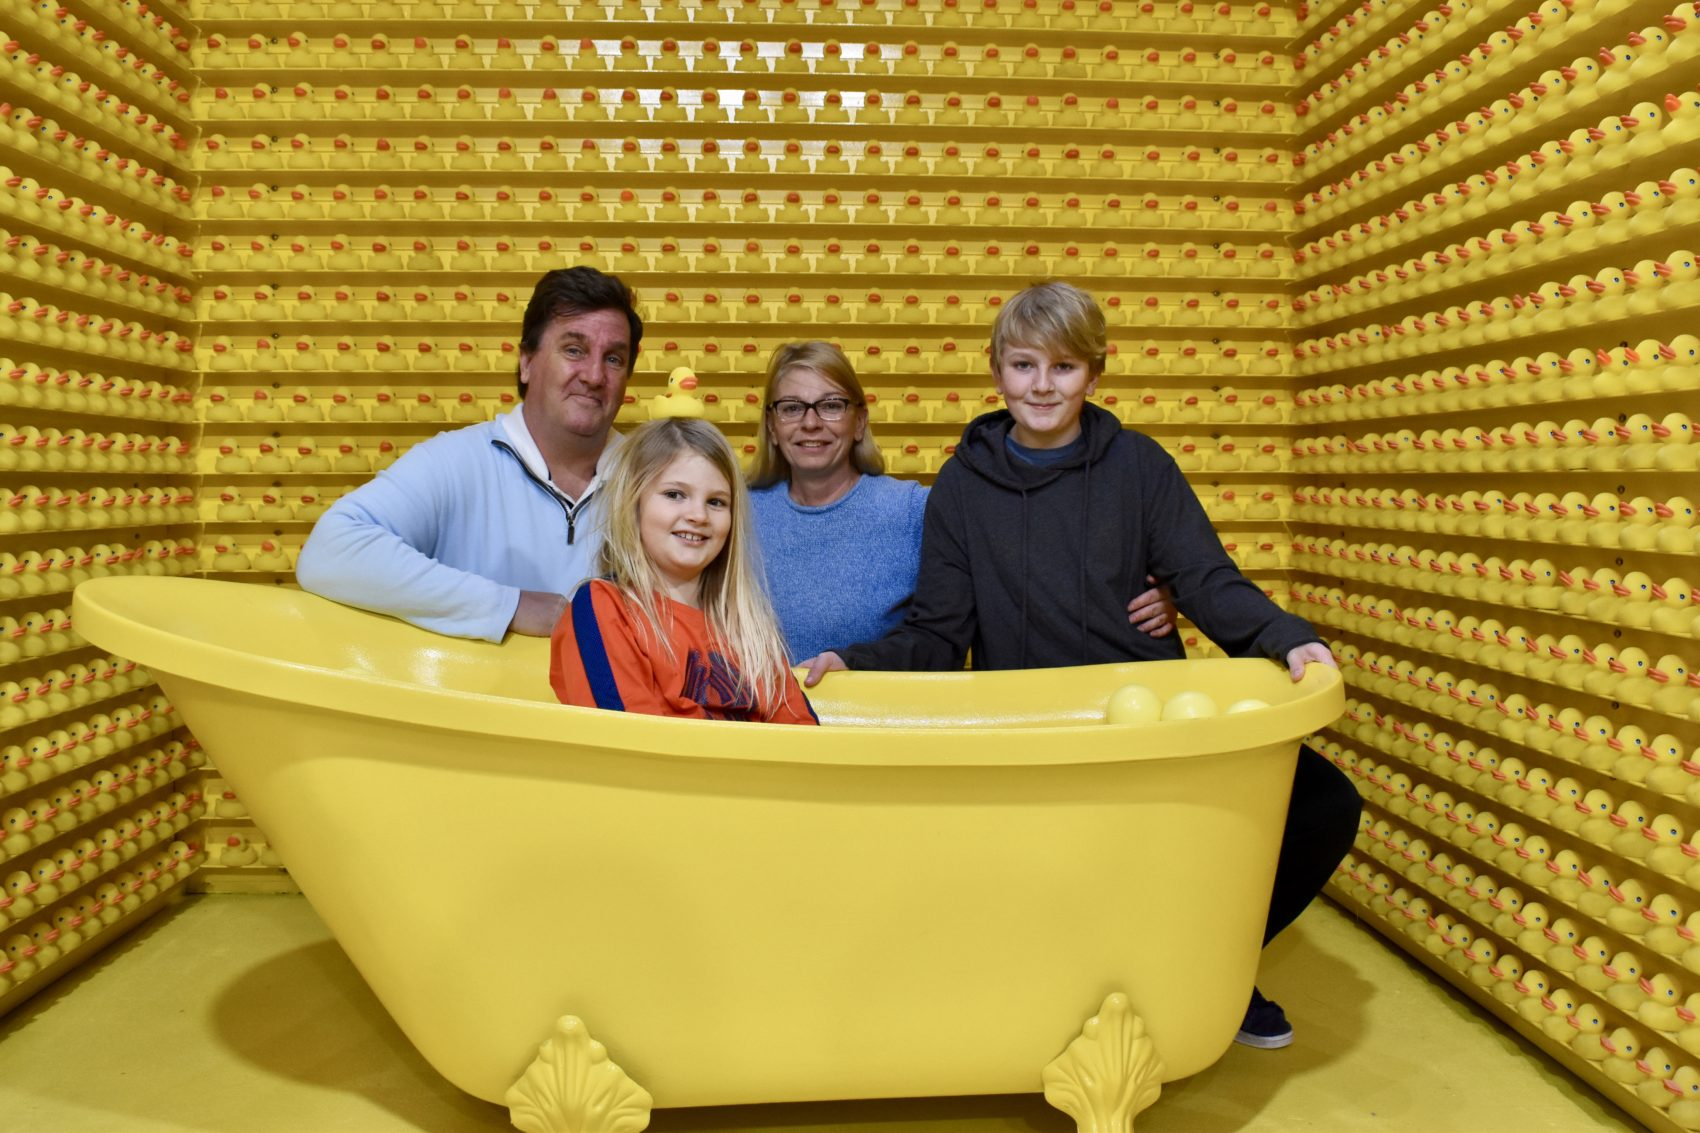 The O'Connor family poses in the bathtub room. From left, Bill, Anne, Kelly and Bill. (Meghan B. Kelly/WBUR)